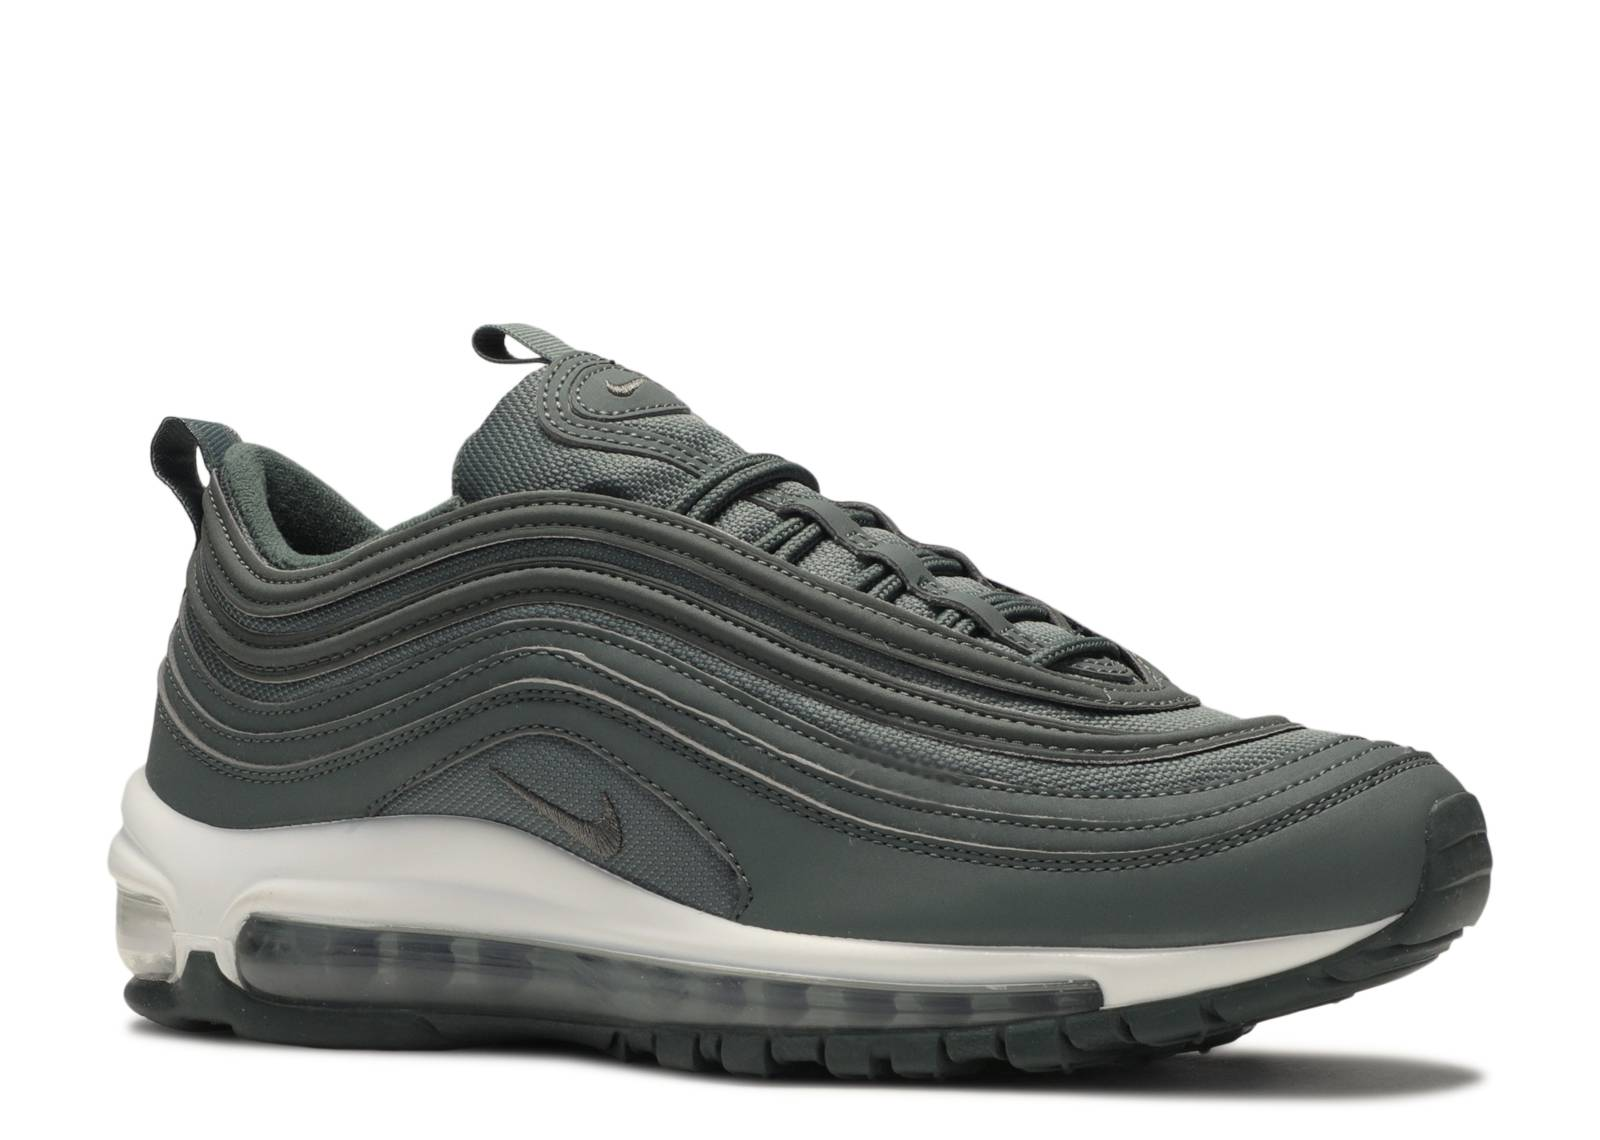 BQ7231-300 GS Mineral Spruce US 5 Youth Nike AIR MAX 97 PE